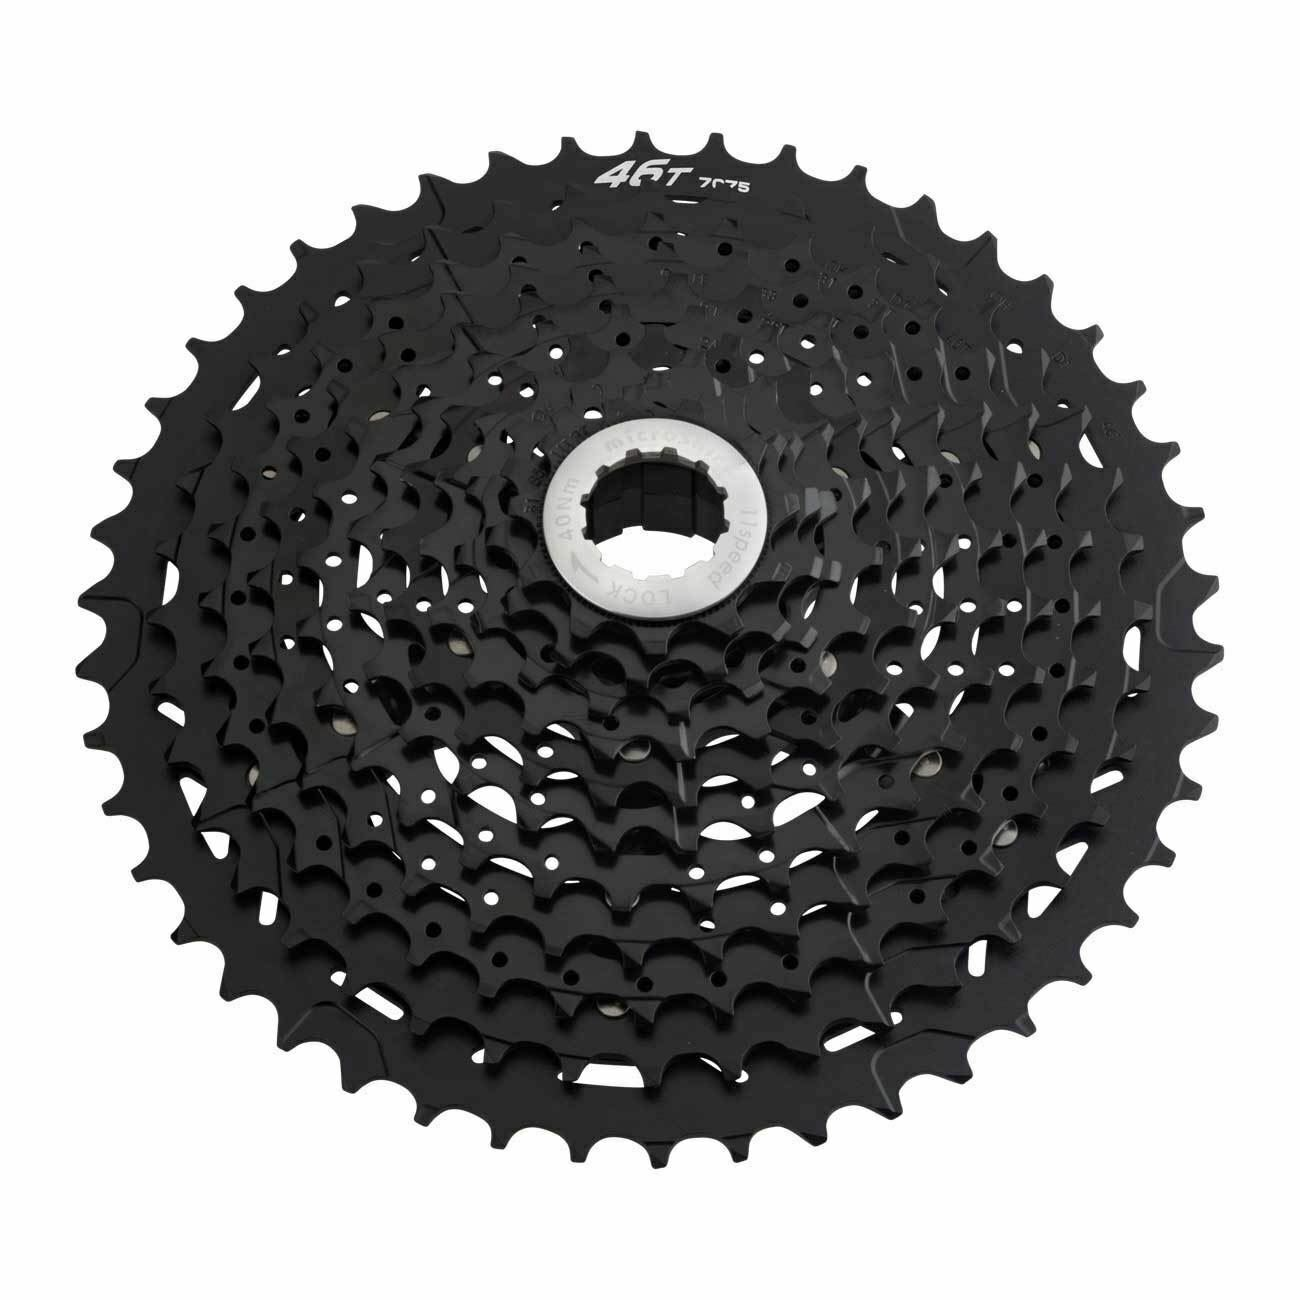 Microshift XCD 11-42t Cassette 11-Speed CS-G113 wide ratio MTB Cyclocross Gravel